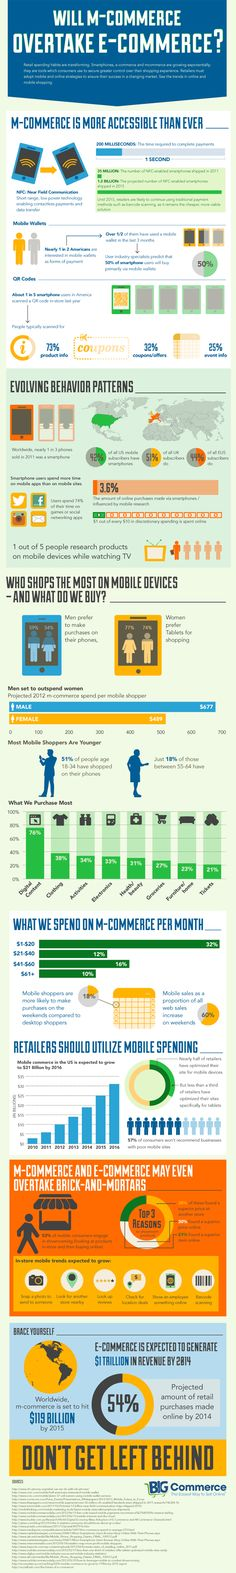 Will Mobile Commerce Overtake Ecommerce?